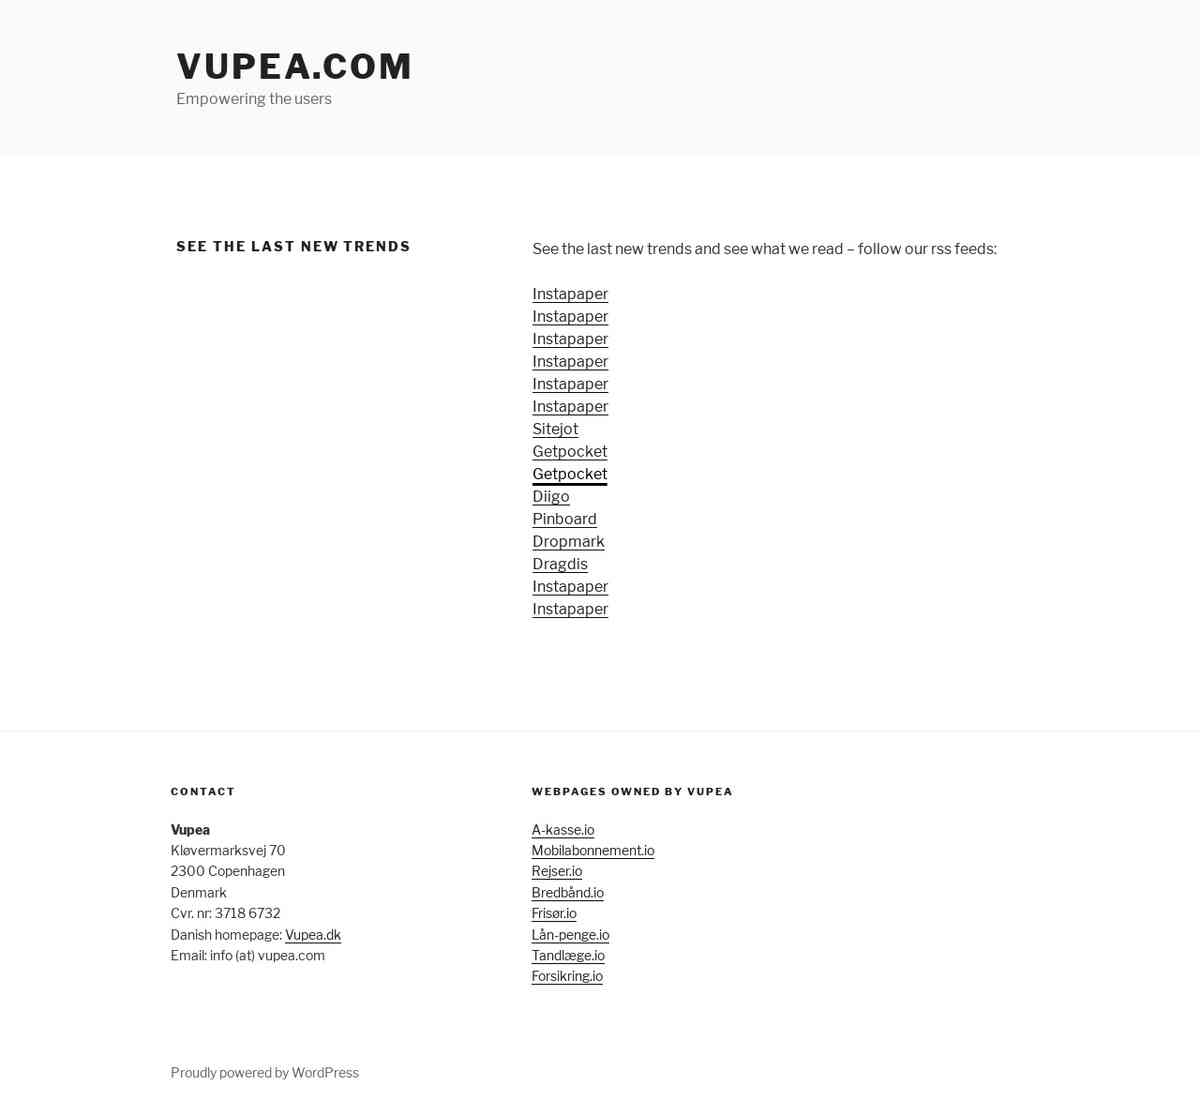 See the last new trends - Vupea.com